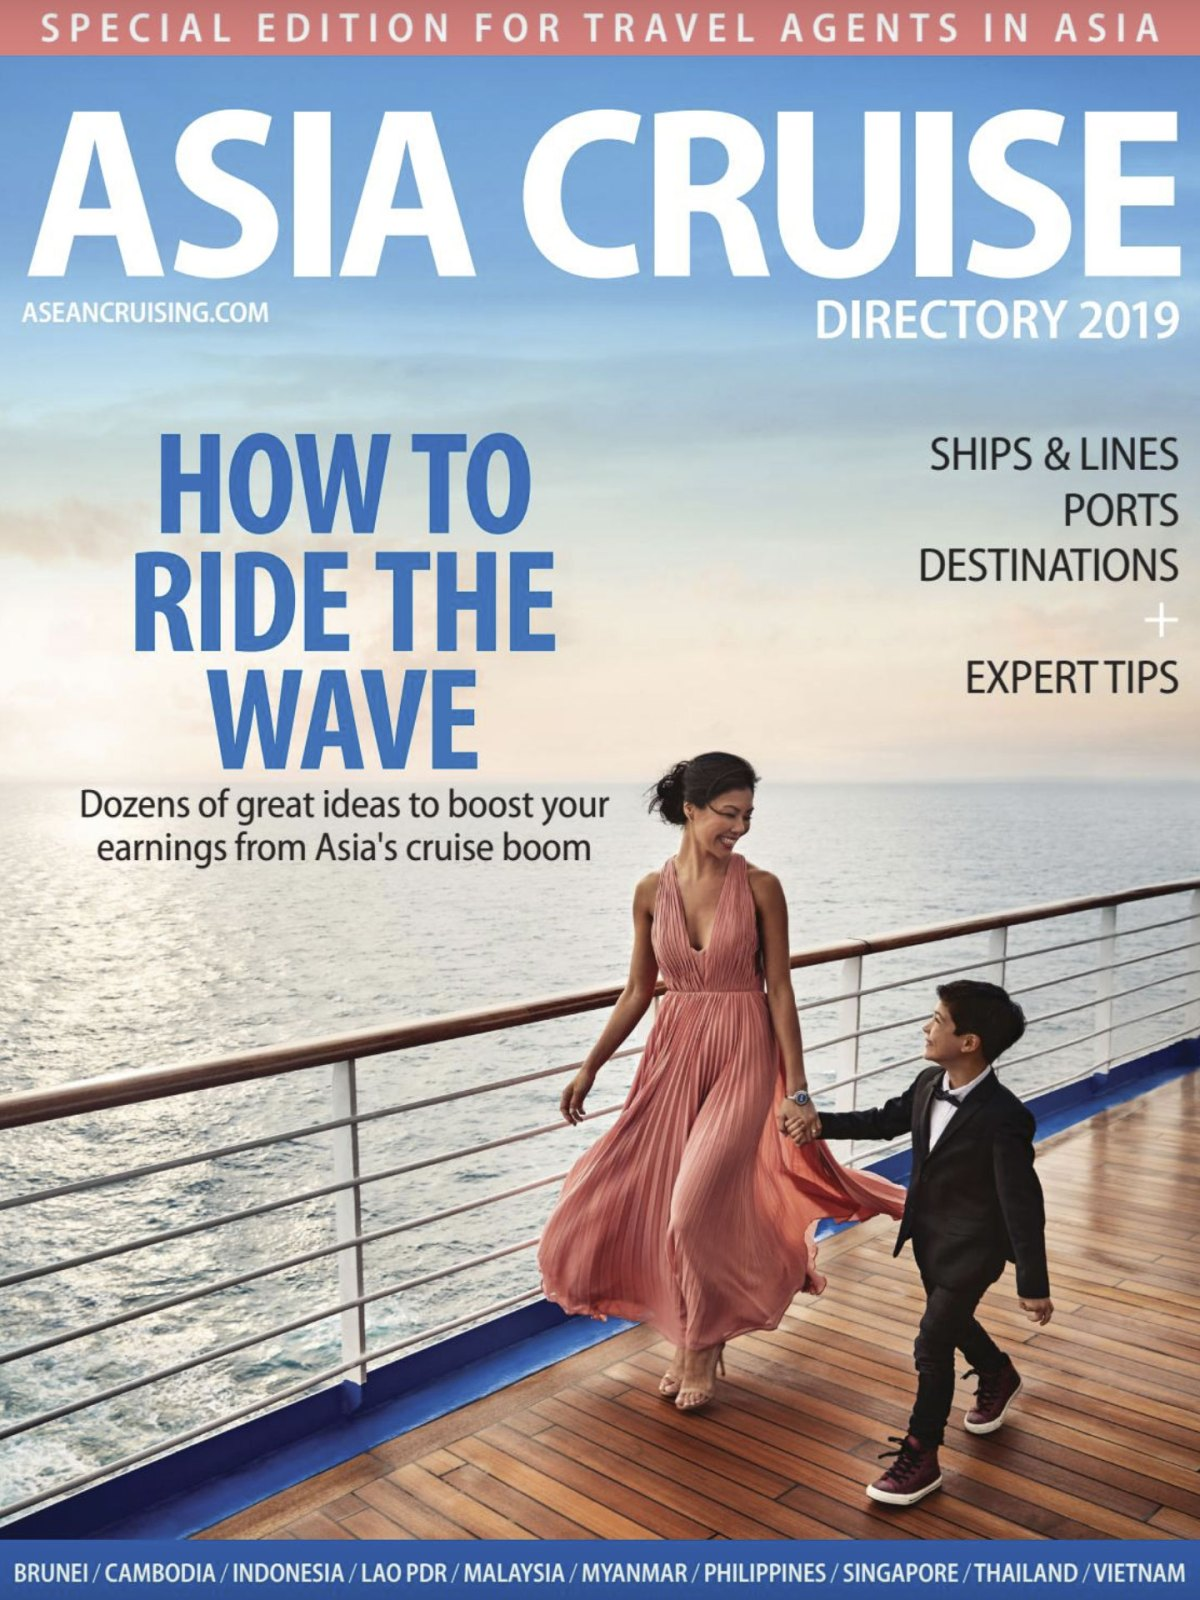 Asia Cruise Directory 2019